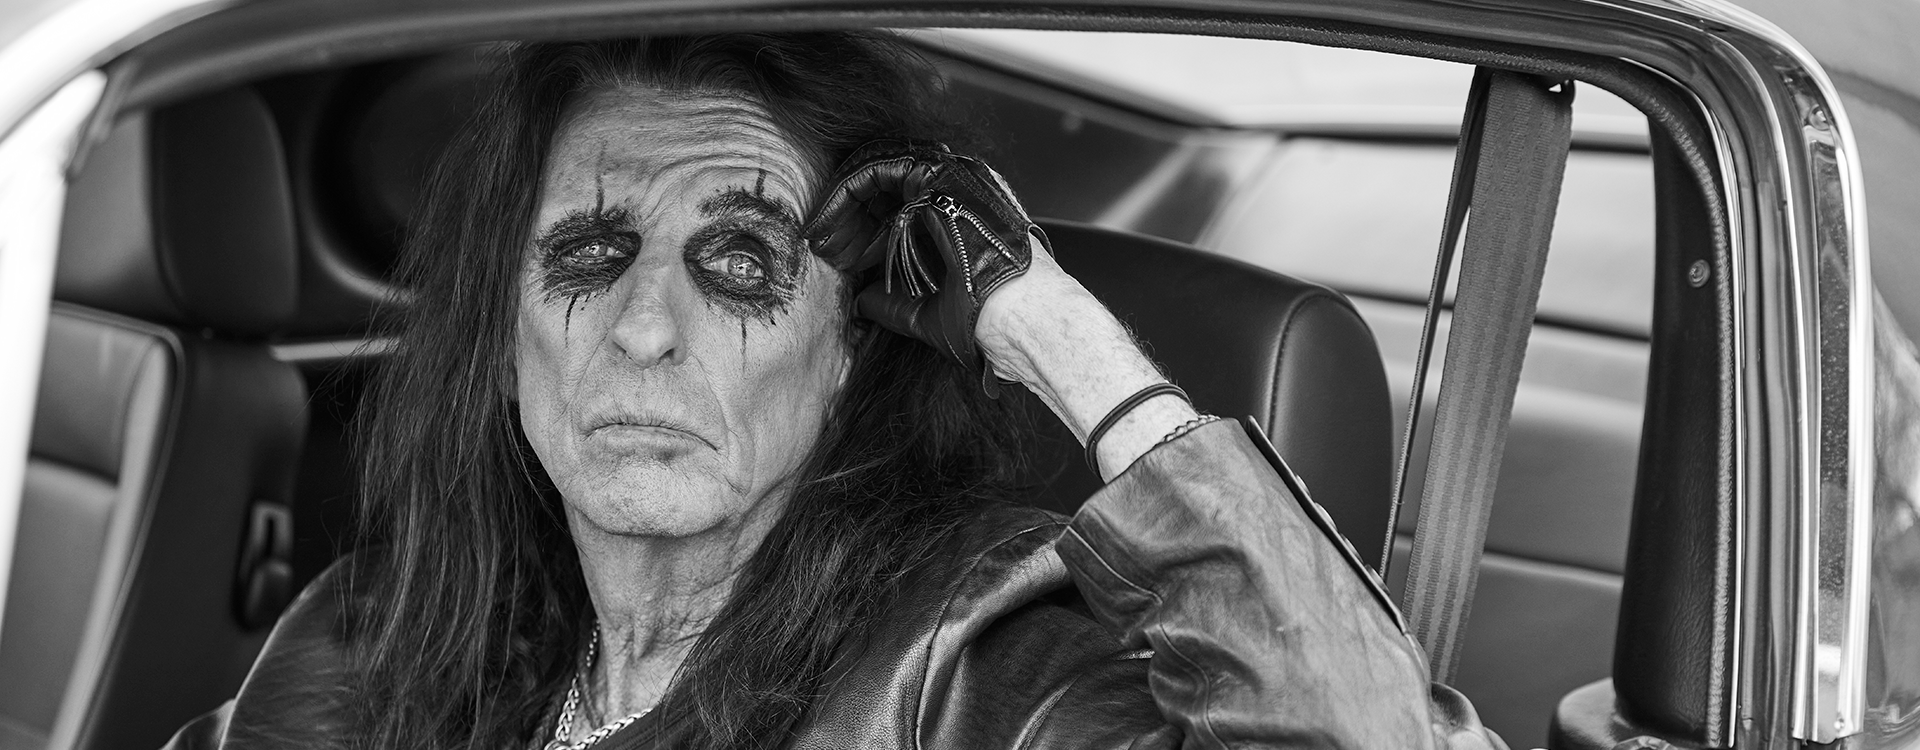 Vinn meet & greet med Alice Cooper!